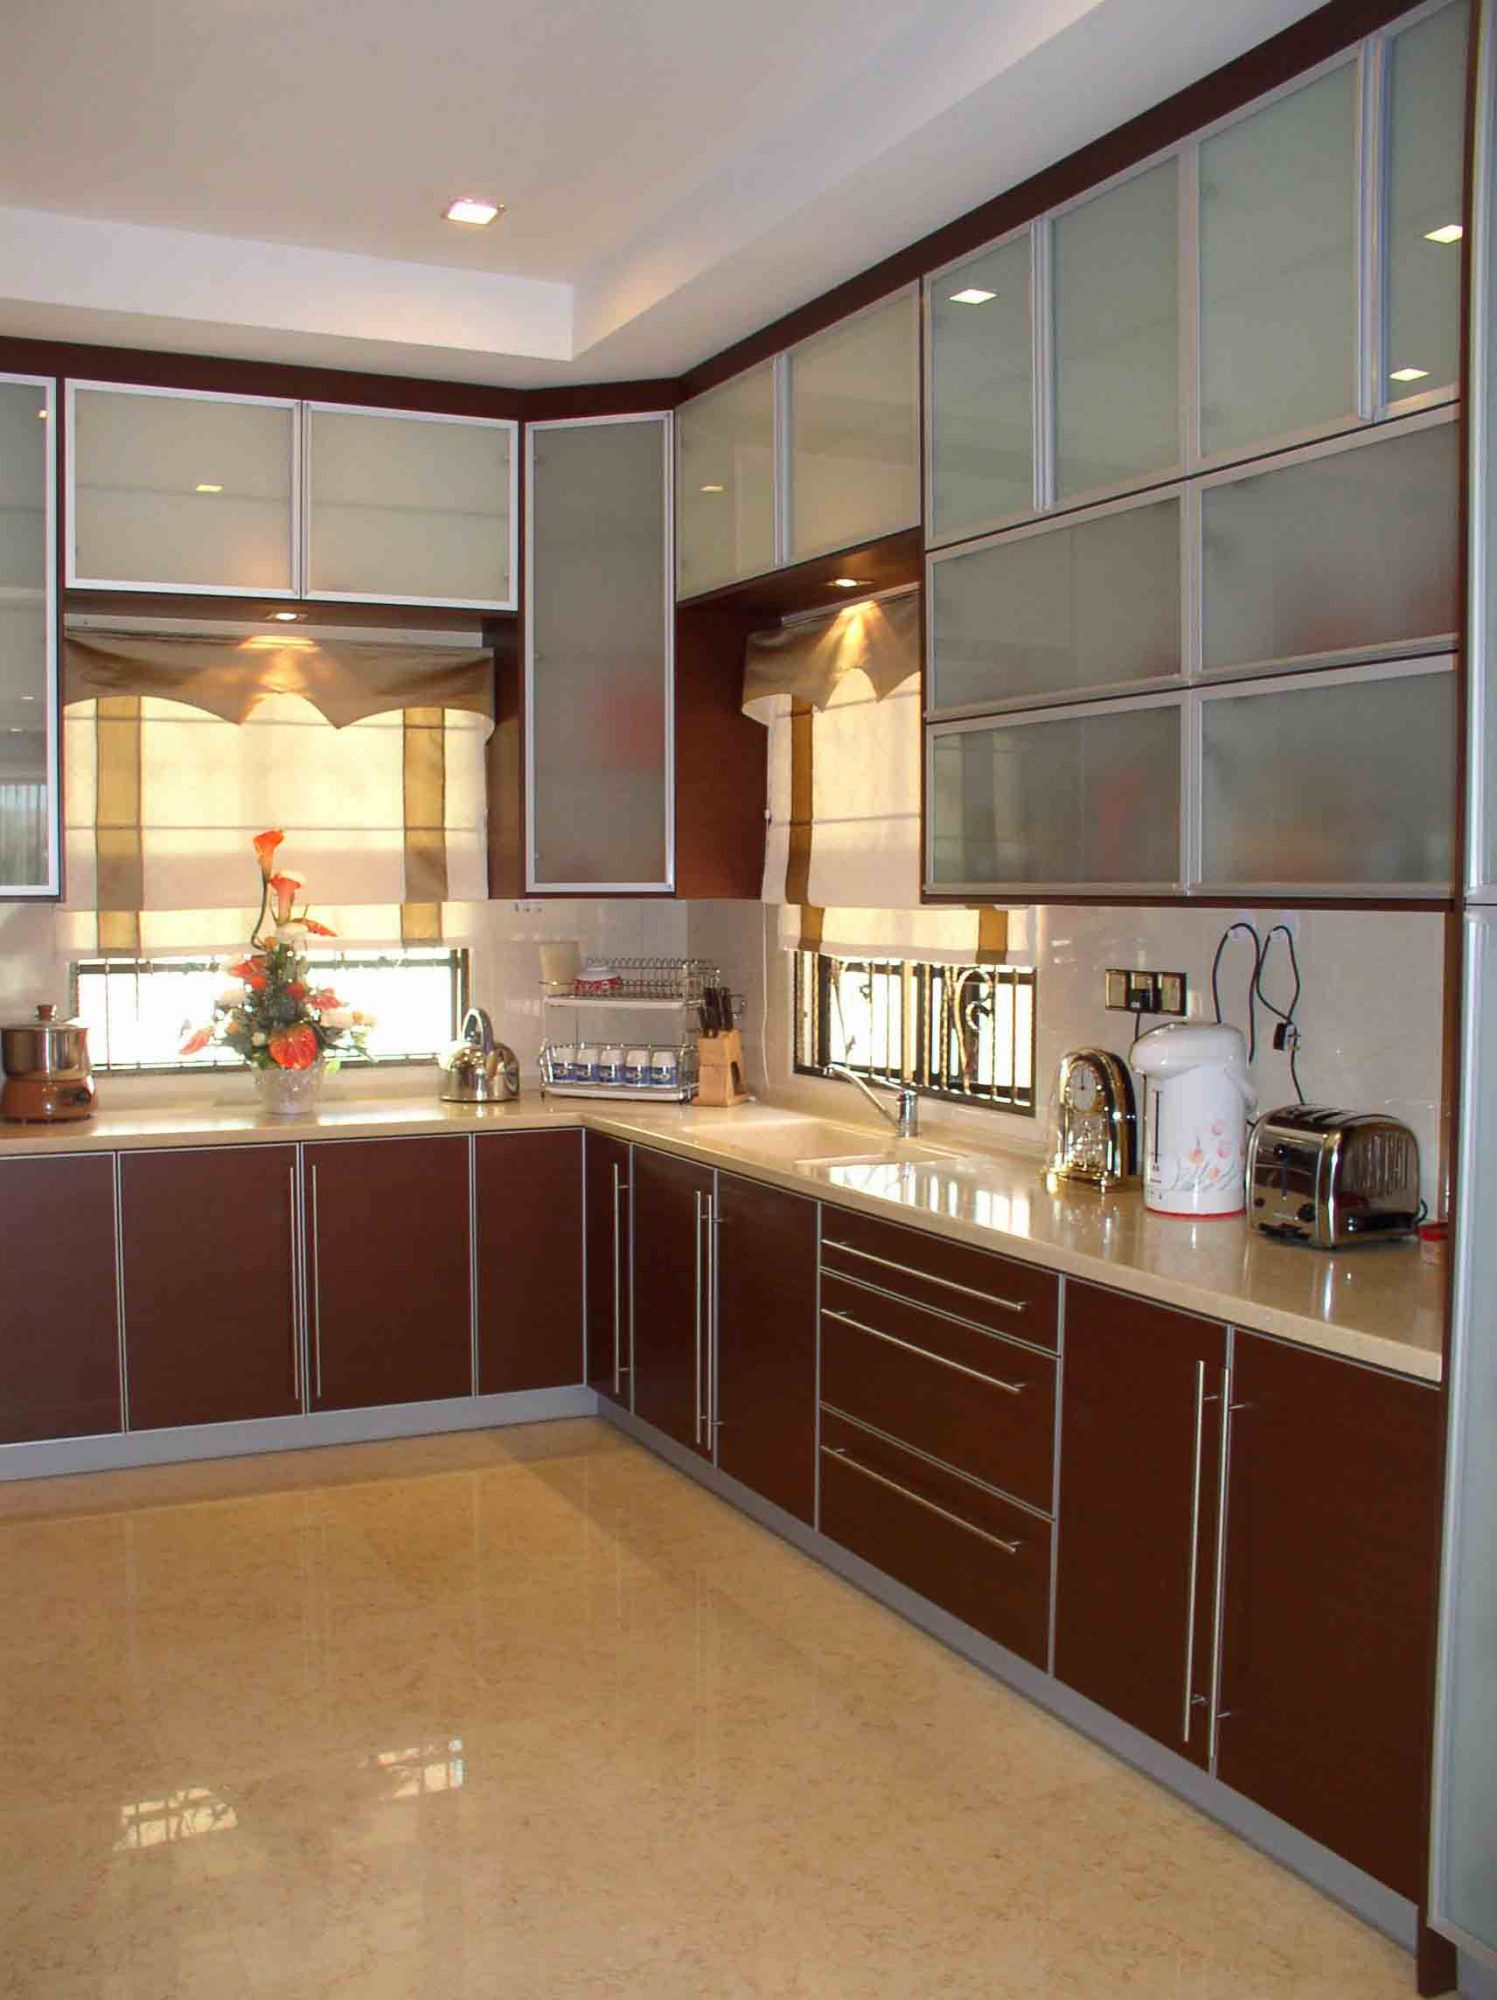 kitchen cabinet design picture 20 popular kitchen cabinet designs in malaysia recommend 362